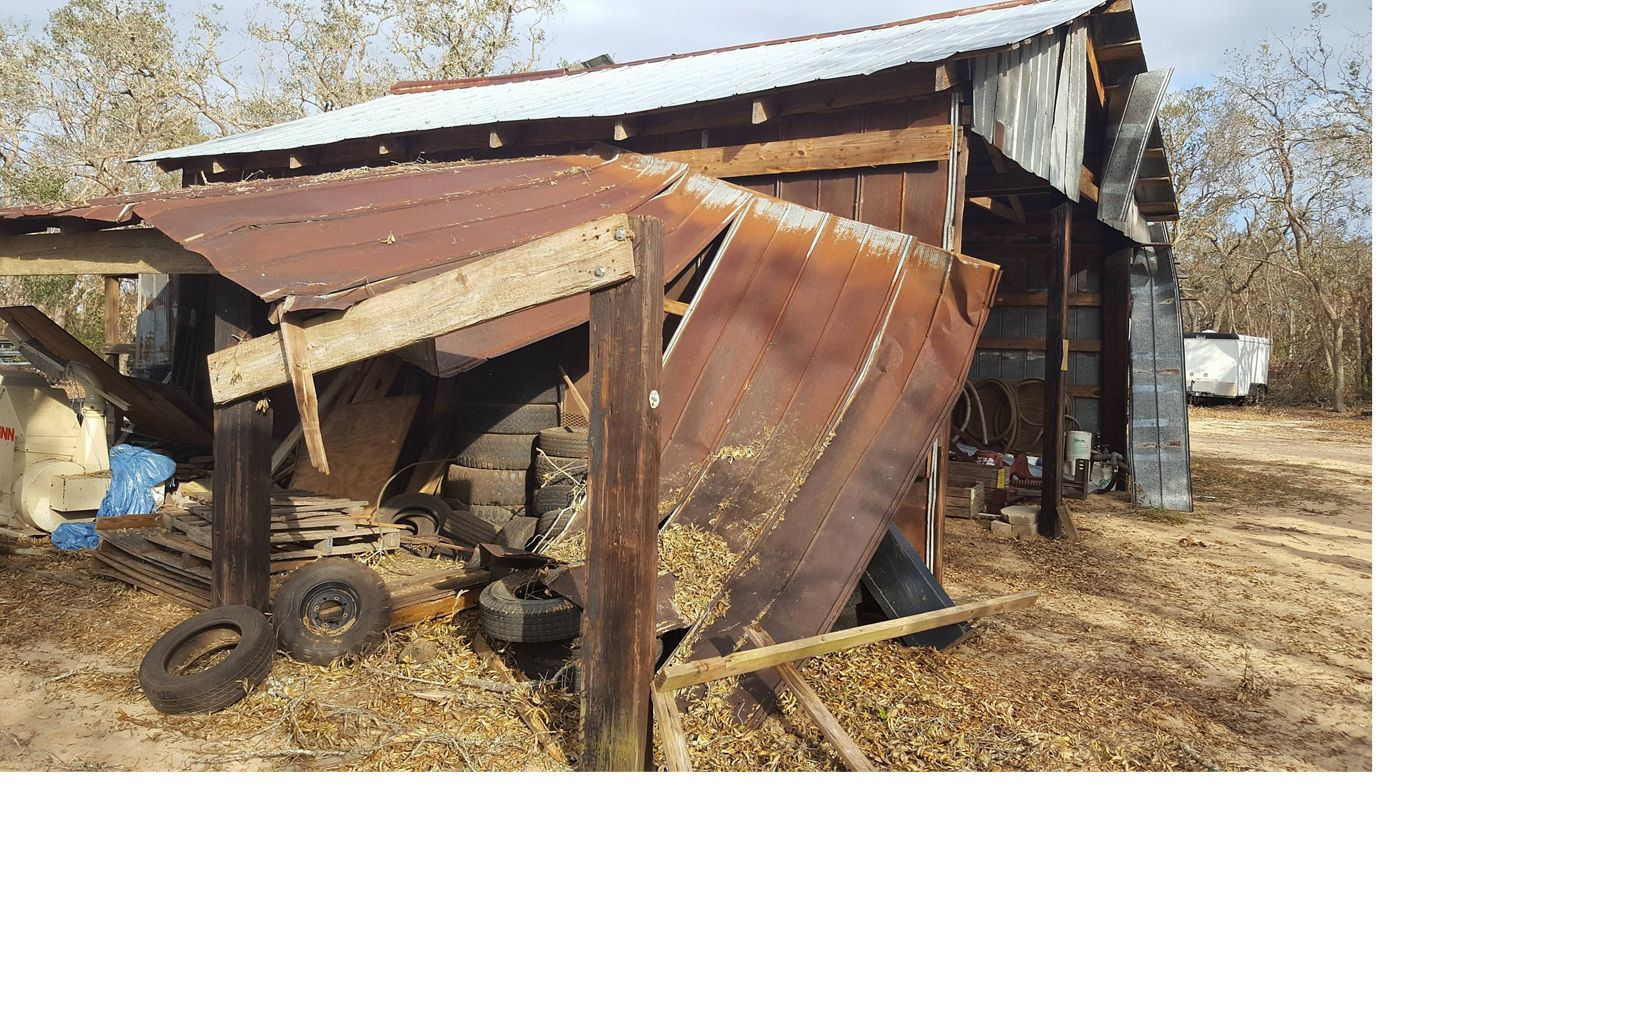 Barn Damage